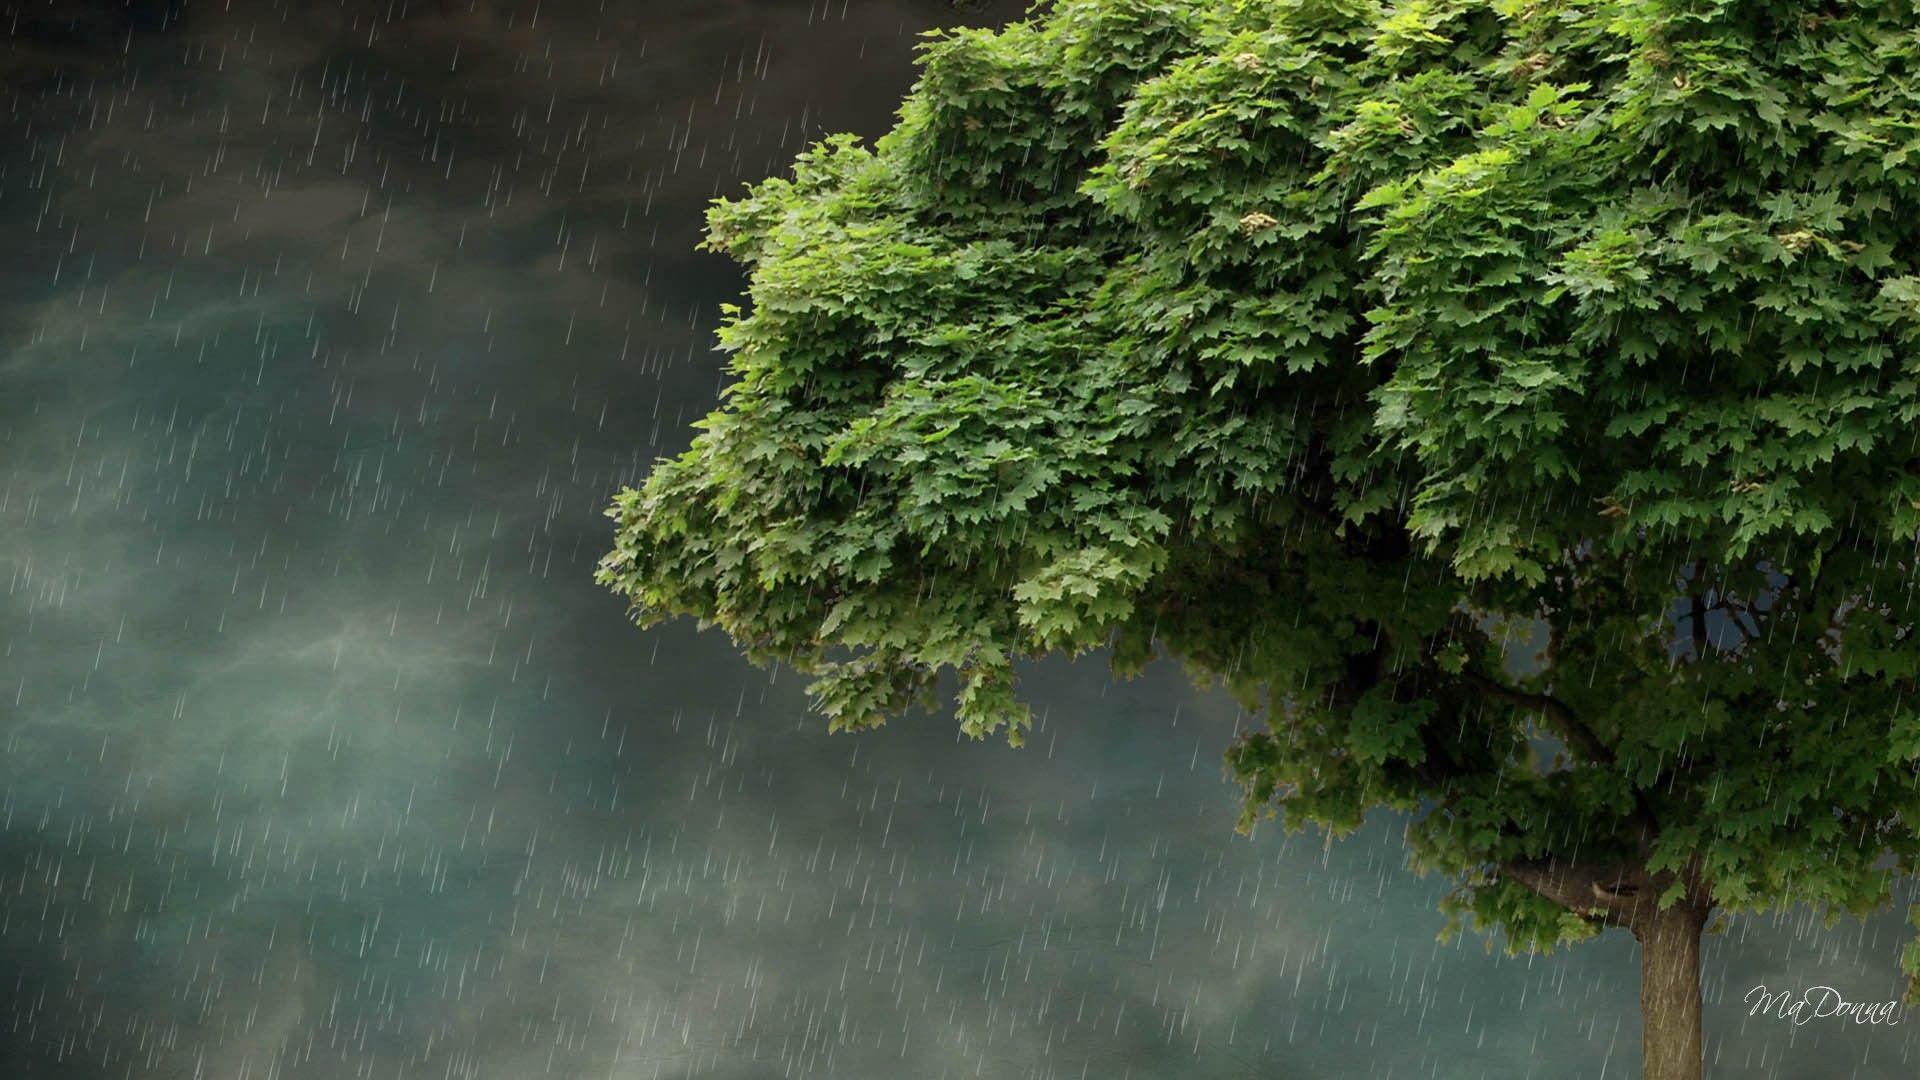 Hq Japan Nature Rain Fall Wallpapers Hd Wallpapers Hd